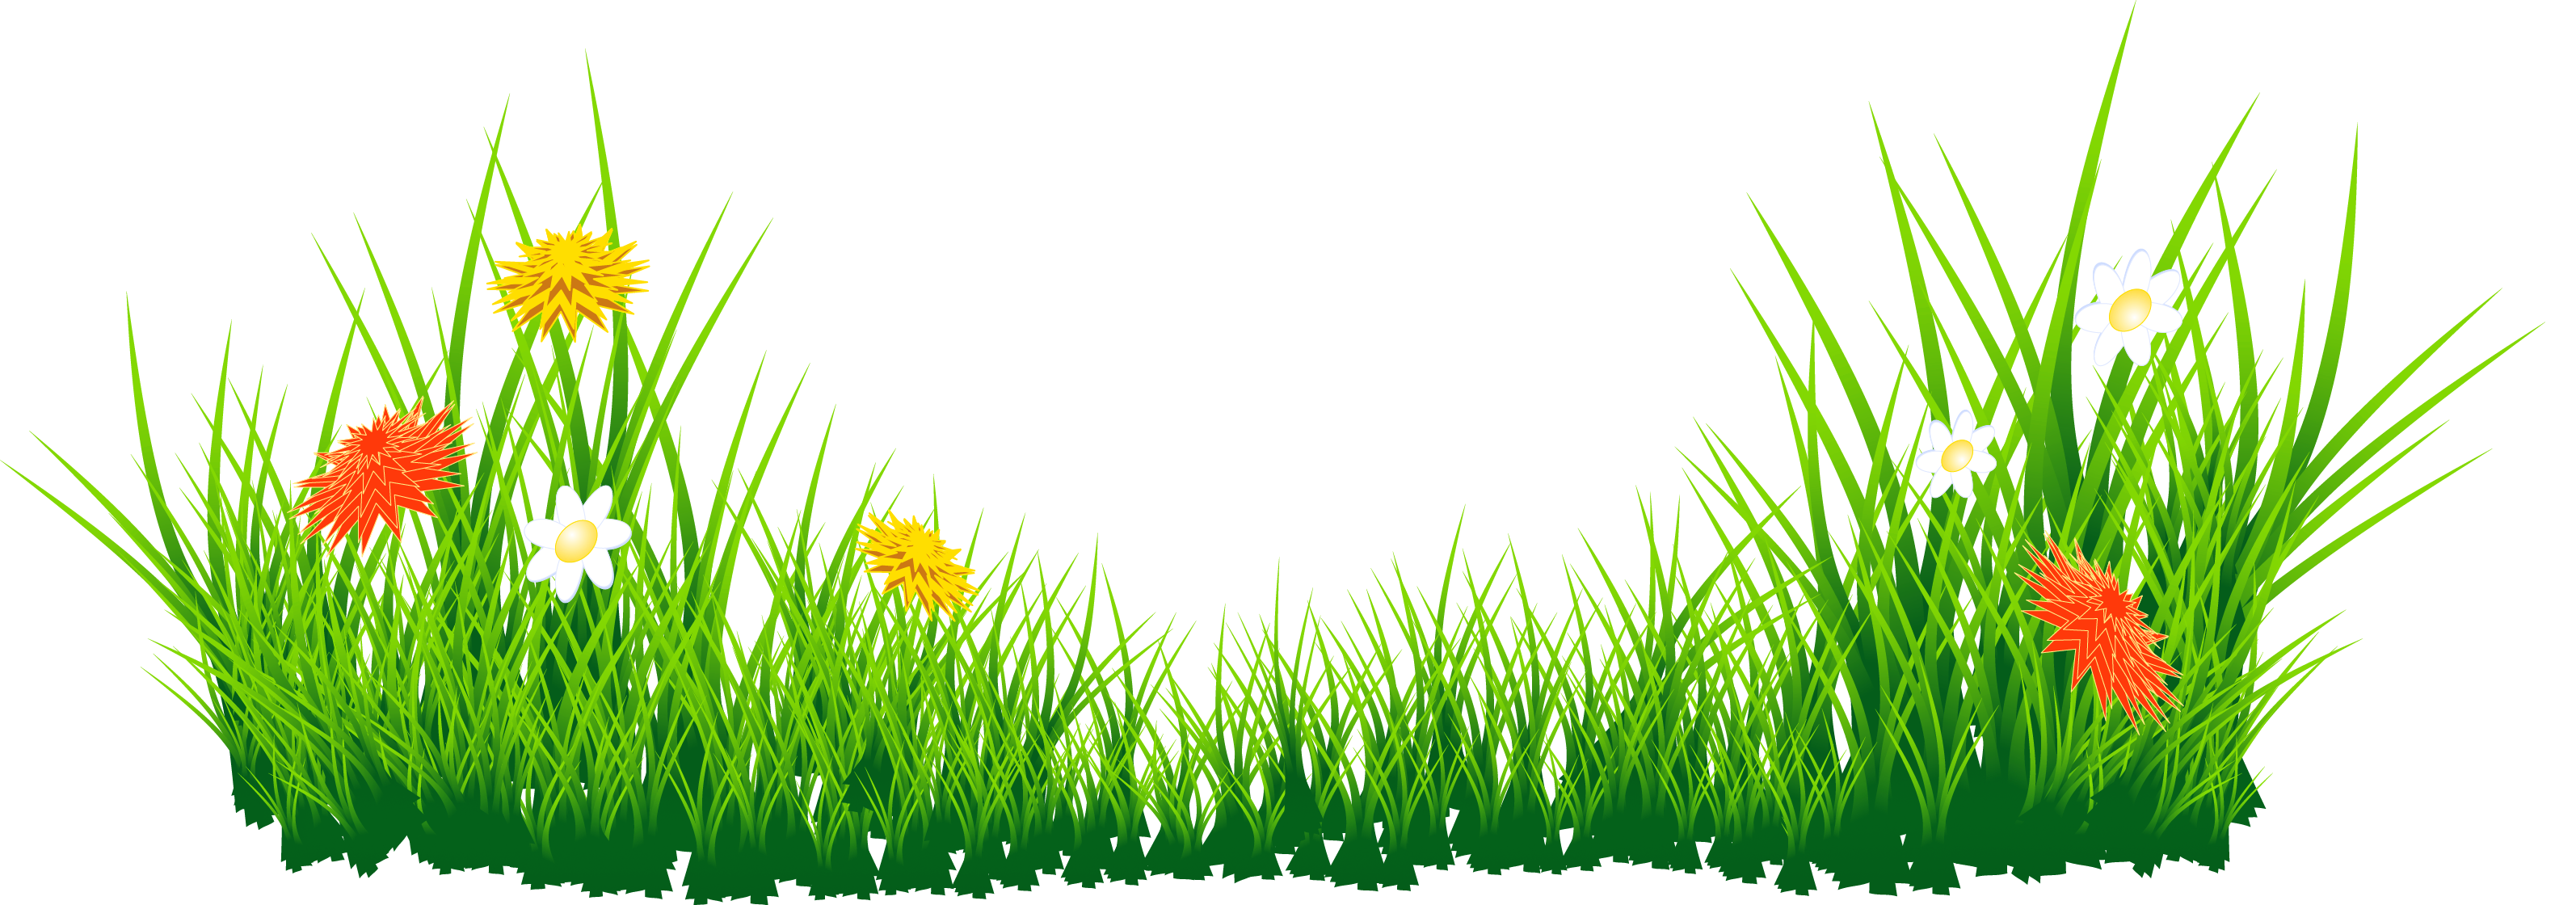 See clipart tree grass #11